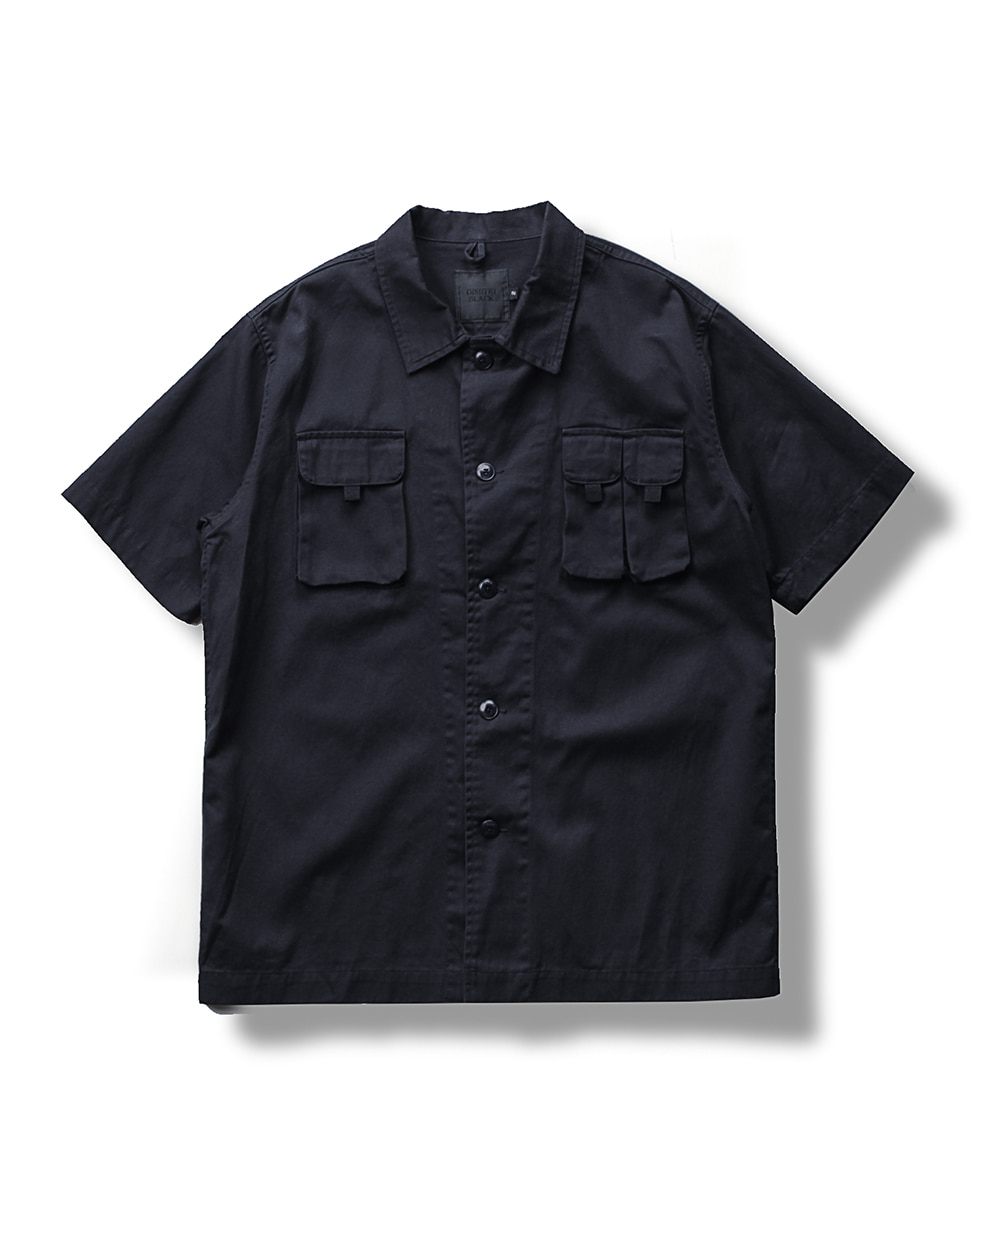 UTILITY REPAIRMAN SHIRTS NAVY